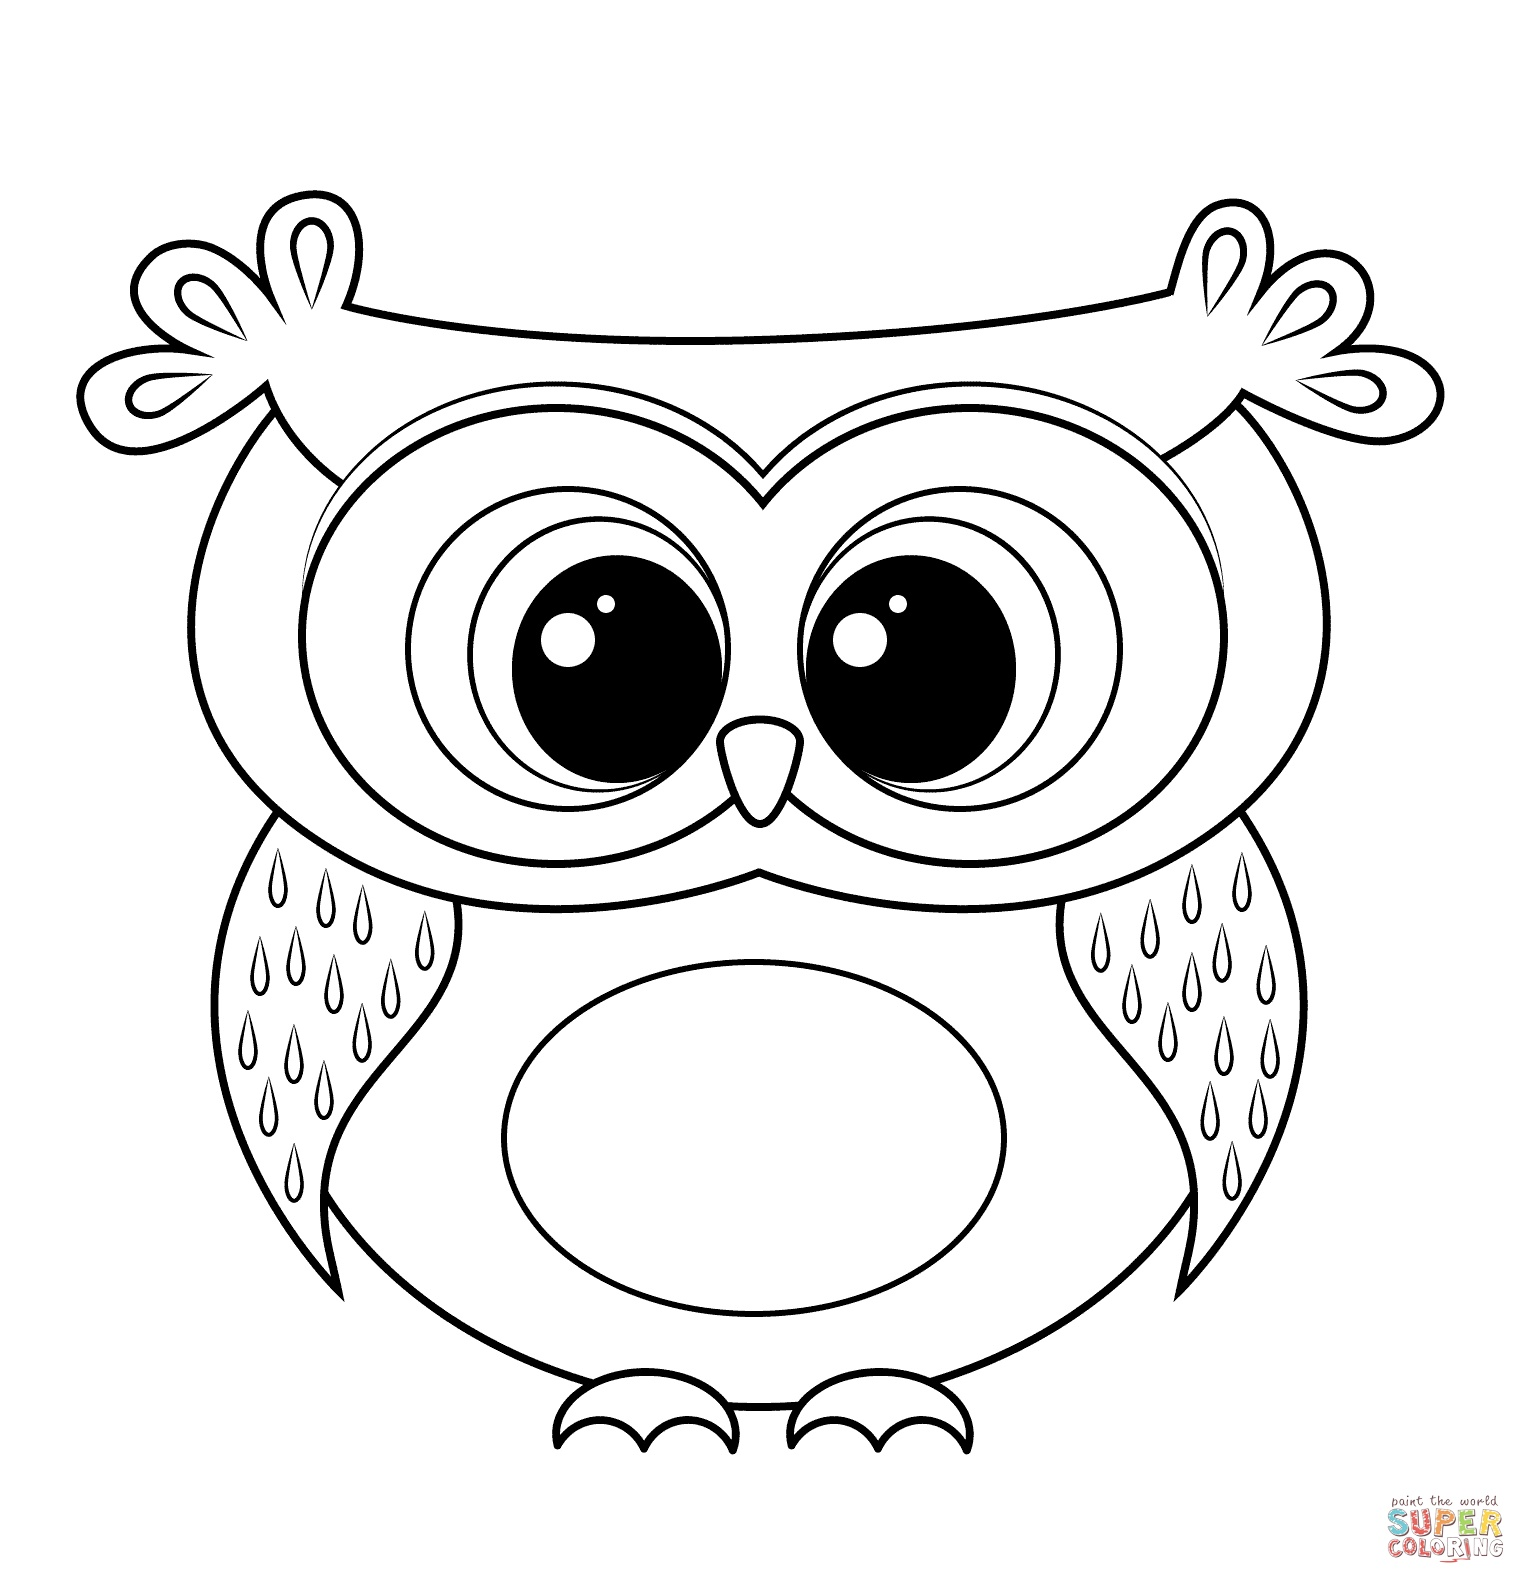 1526x1584 Cute Cartoon Owl Coloring Pages Gallery Coloring Sheets